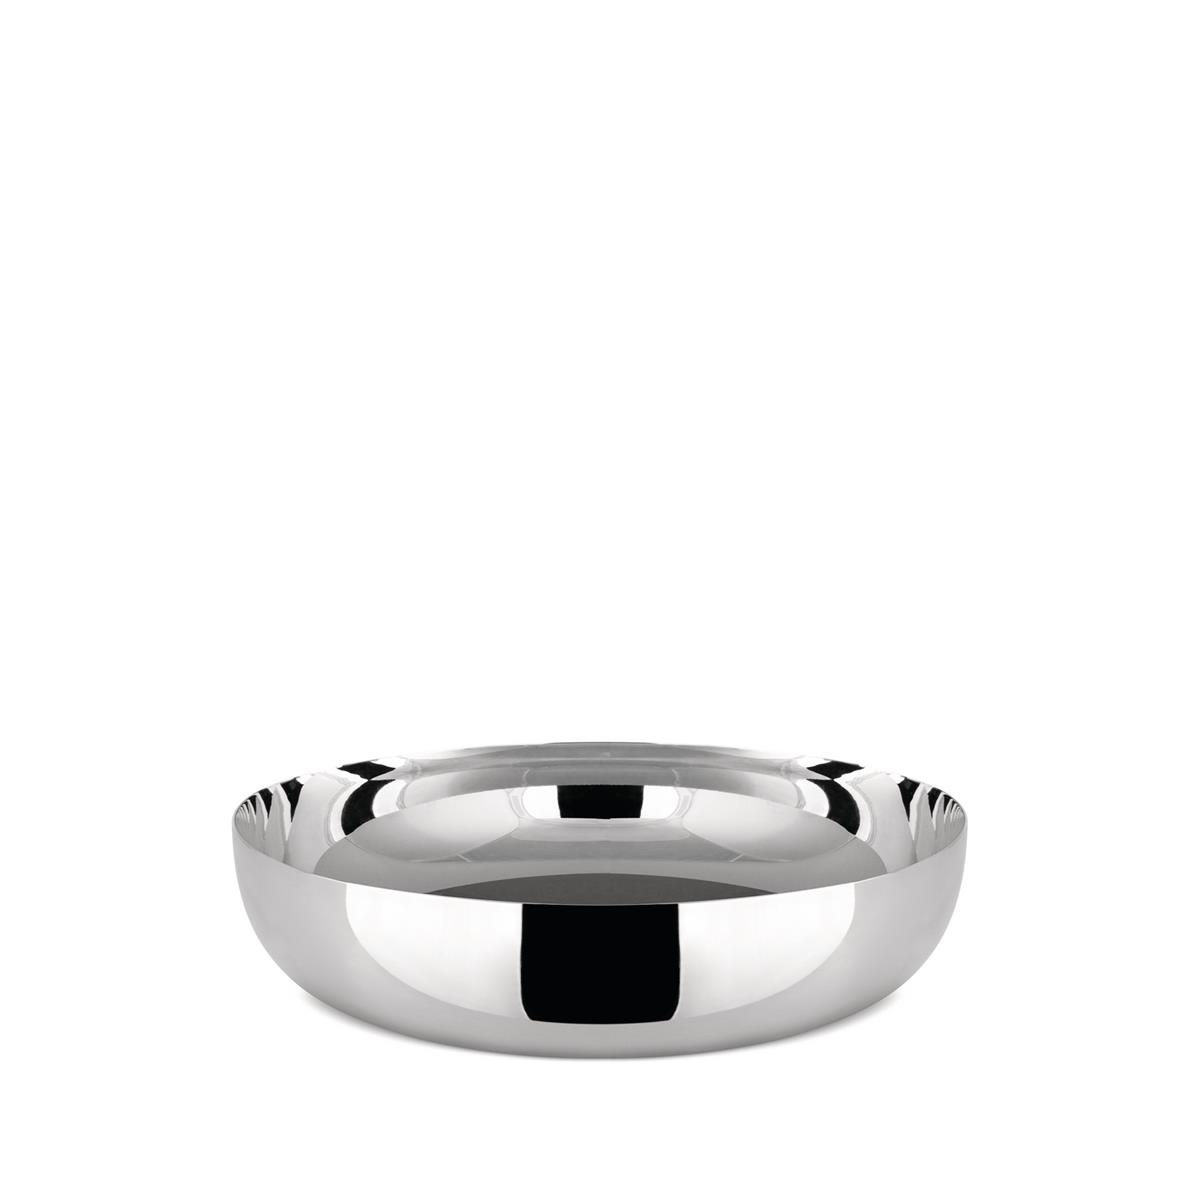 Alessi-Salad bowl in 18/10 stainless steel